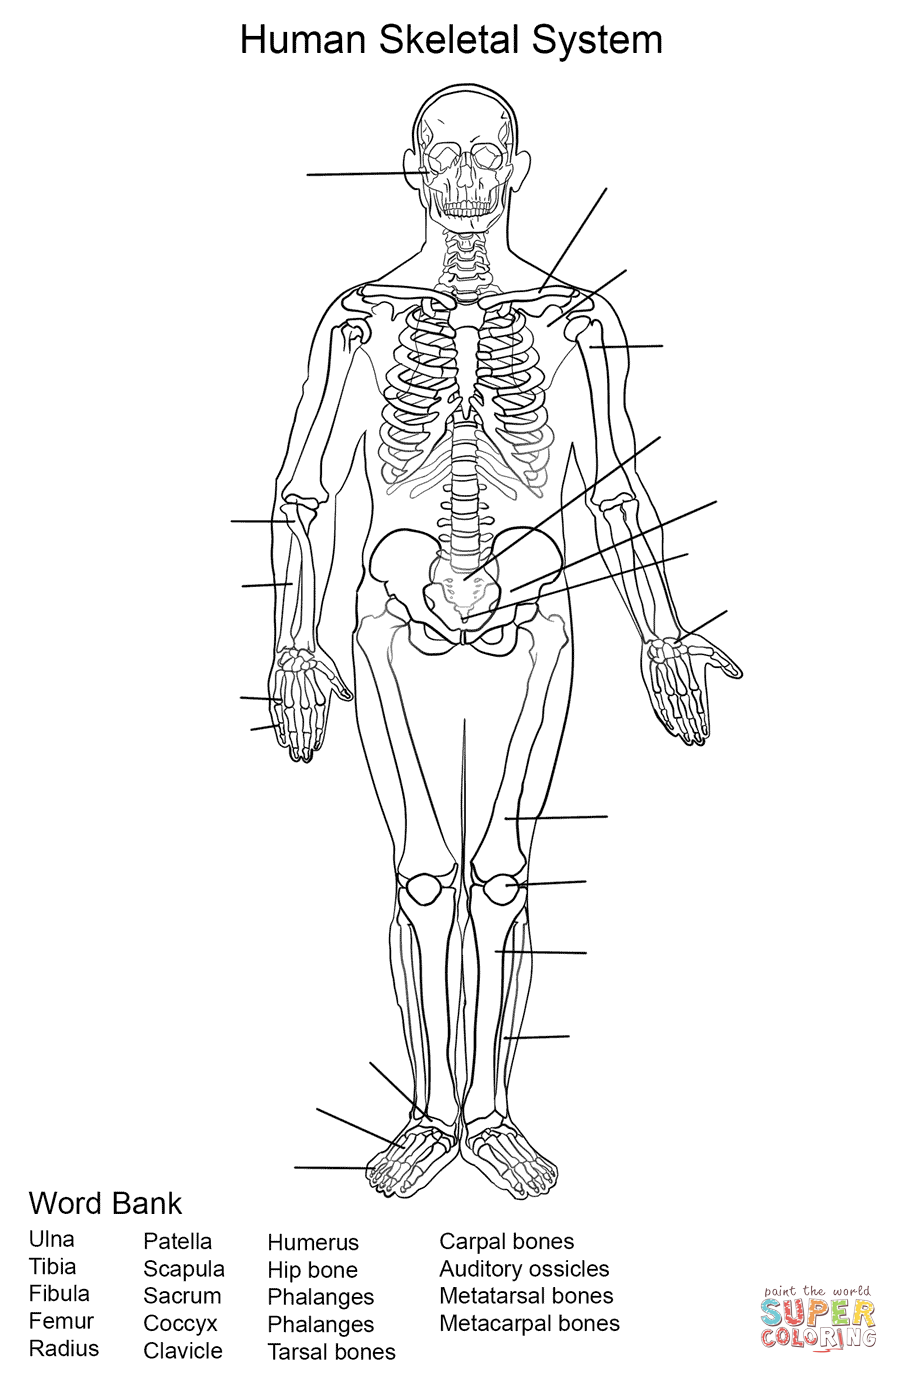 Circulatory System For Kids Coloring Pages Az Coloring Pages Circulatory System Coloring Page